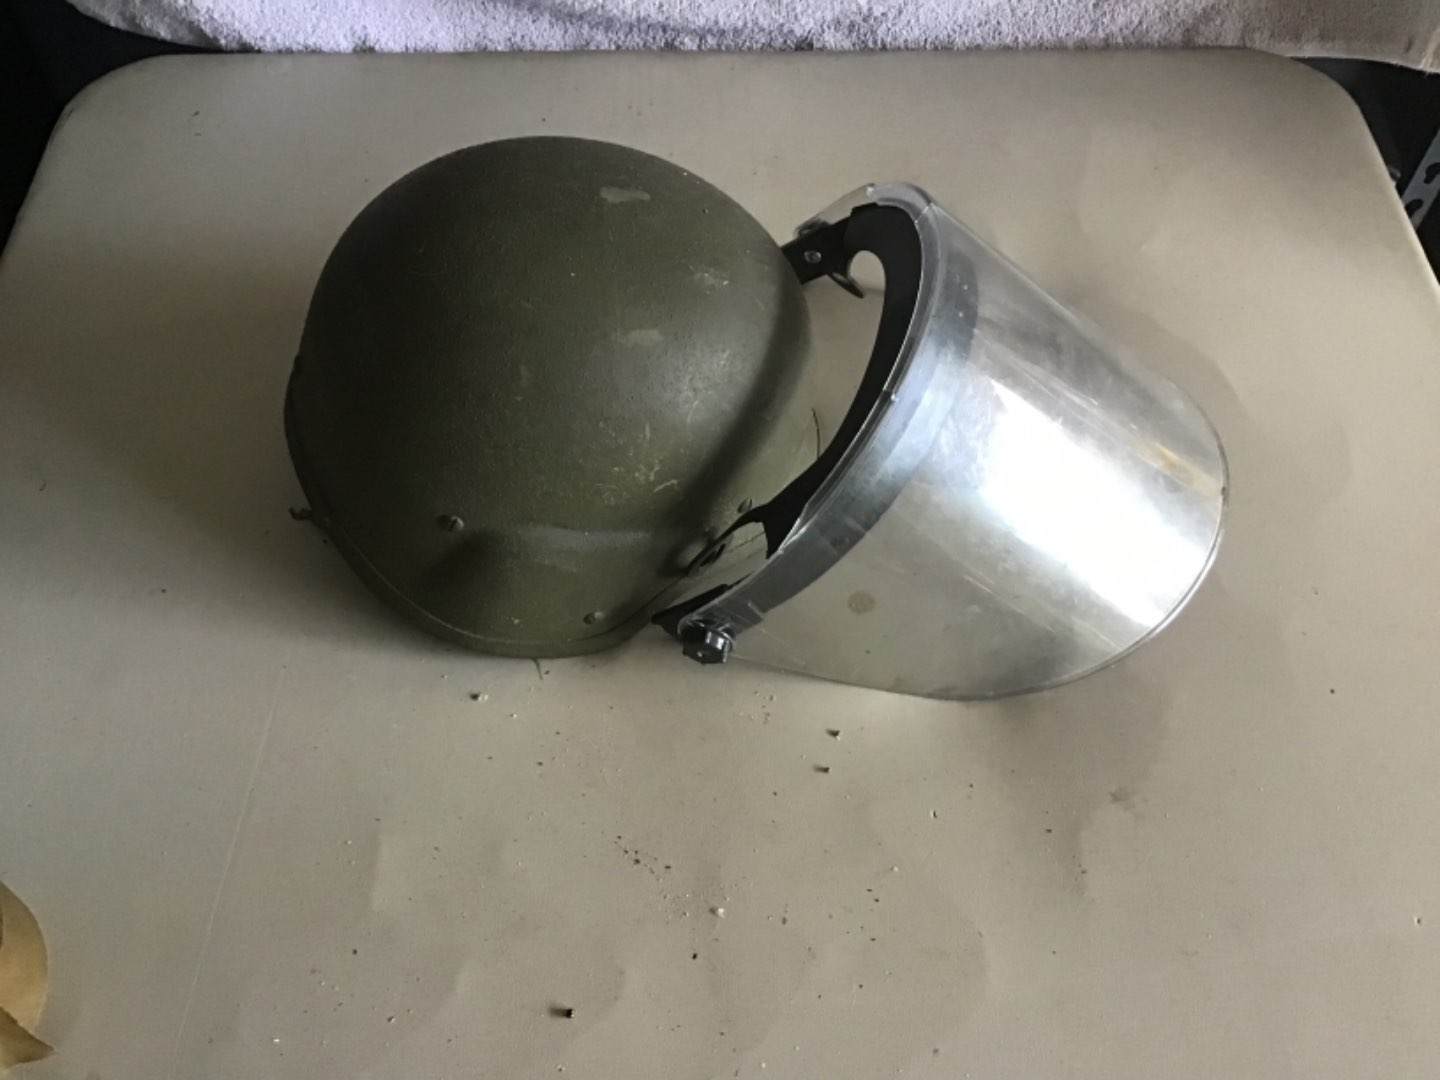 Lot # 144 US MILITARY or Riot Police Helmet w/Shield - See Descrip in Lot 142